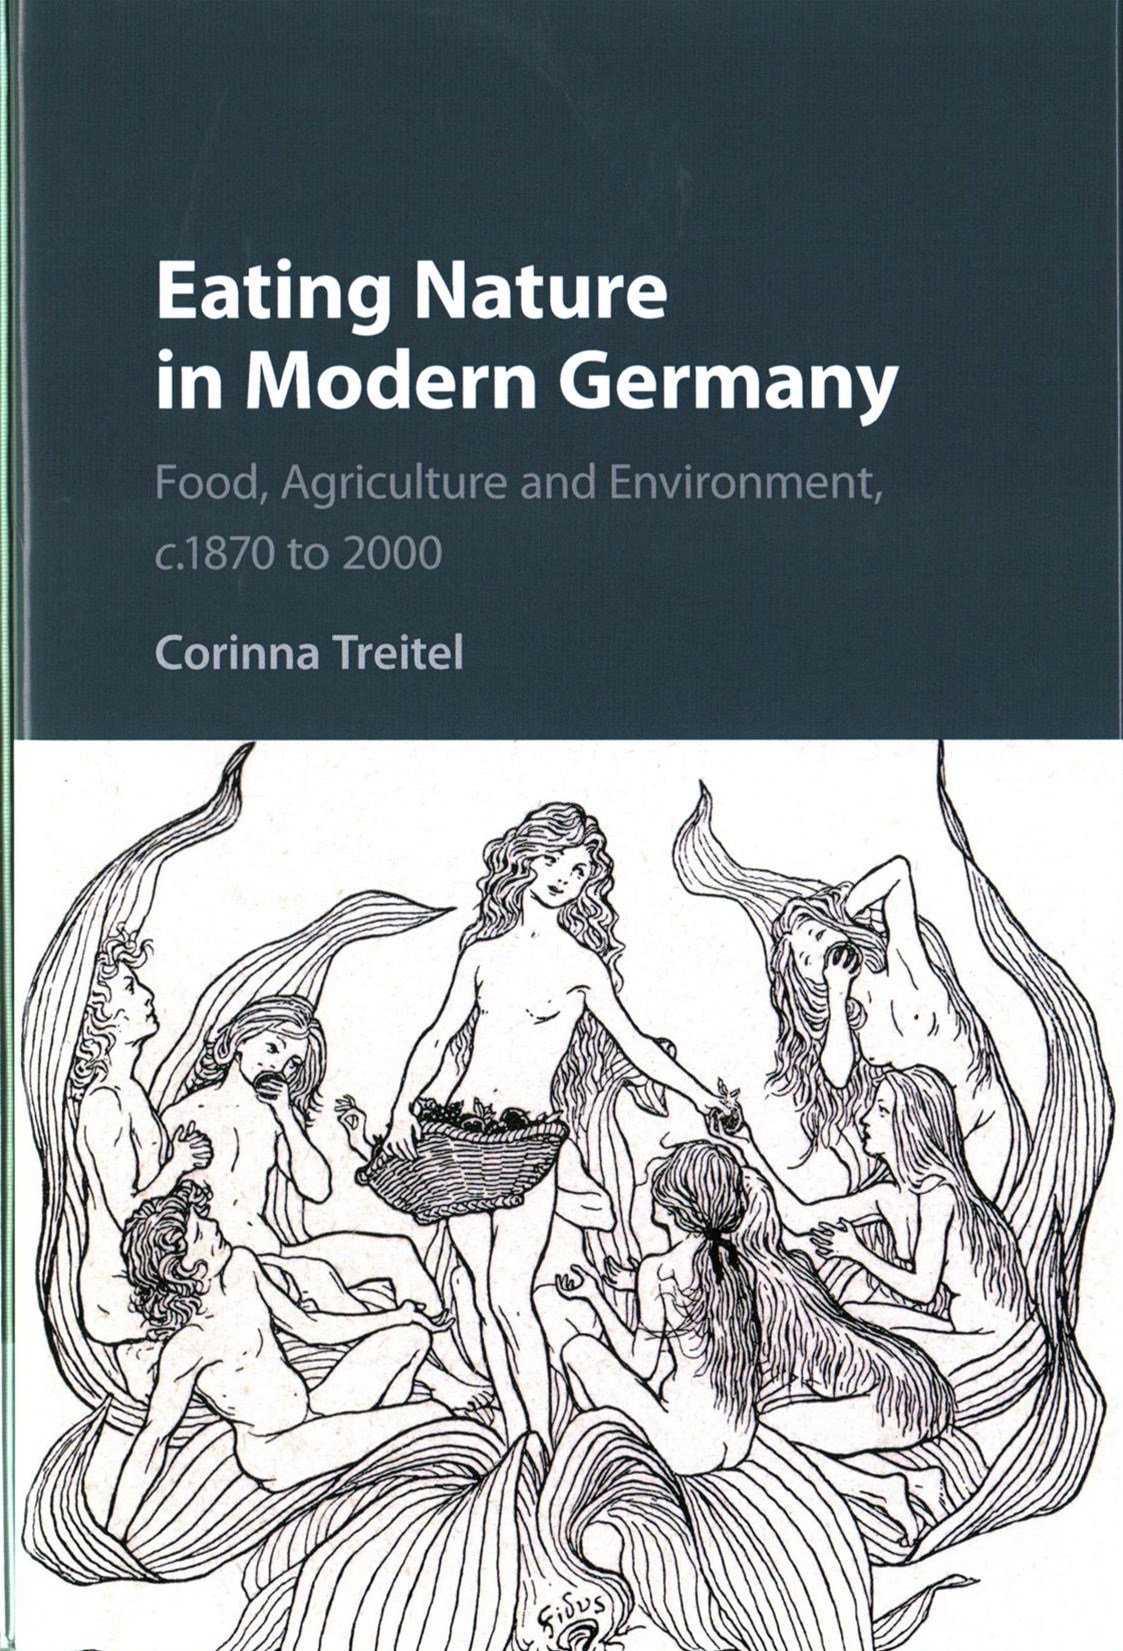 Eating Nature in Modern Germany